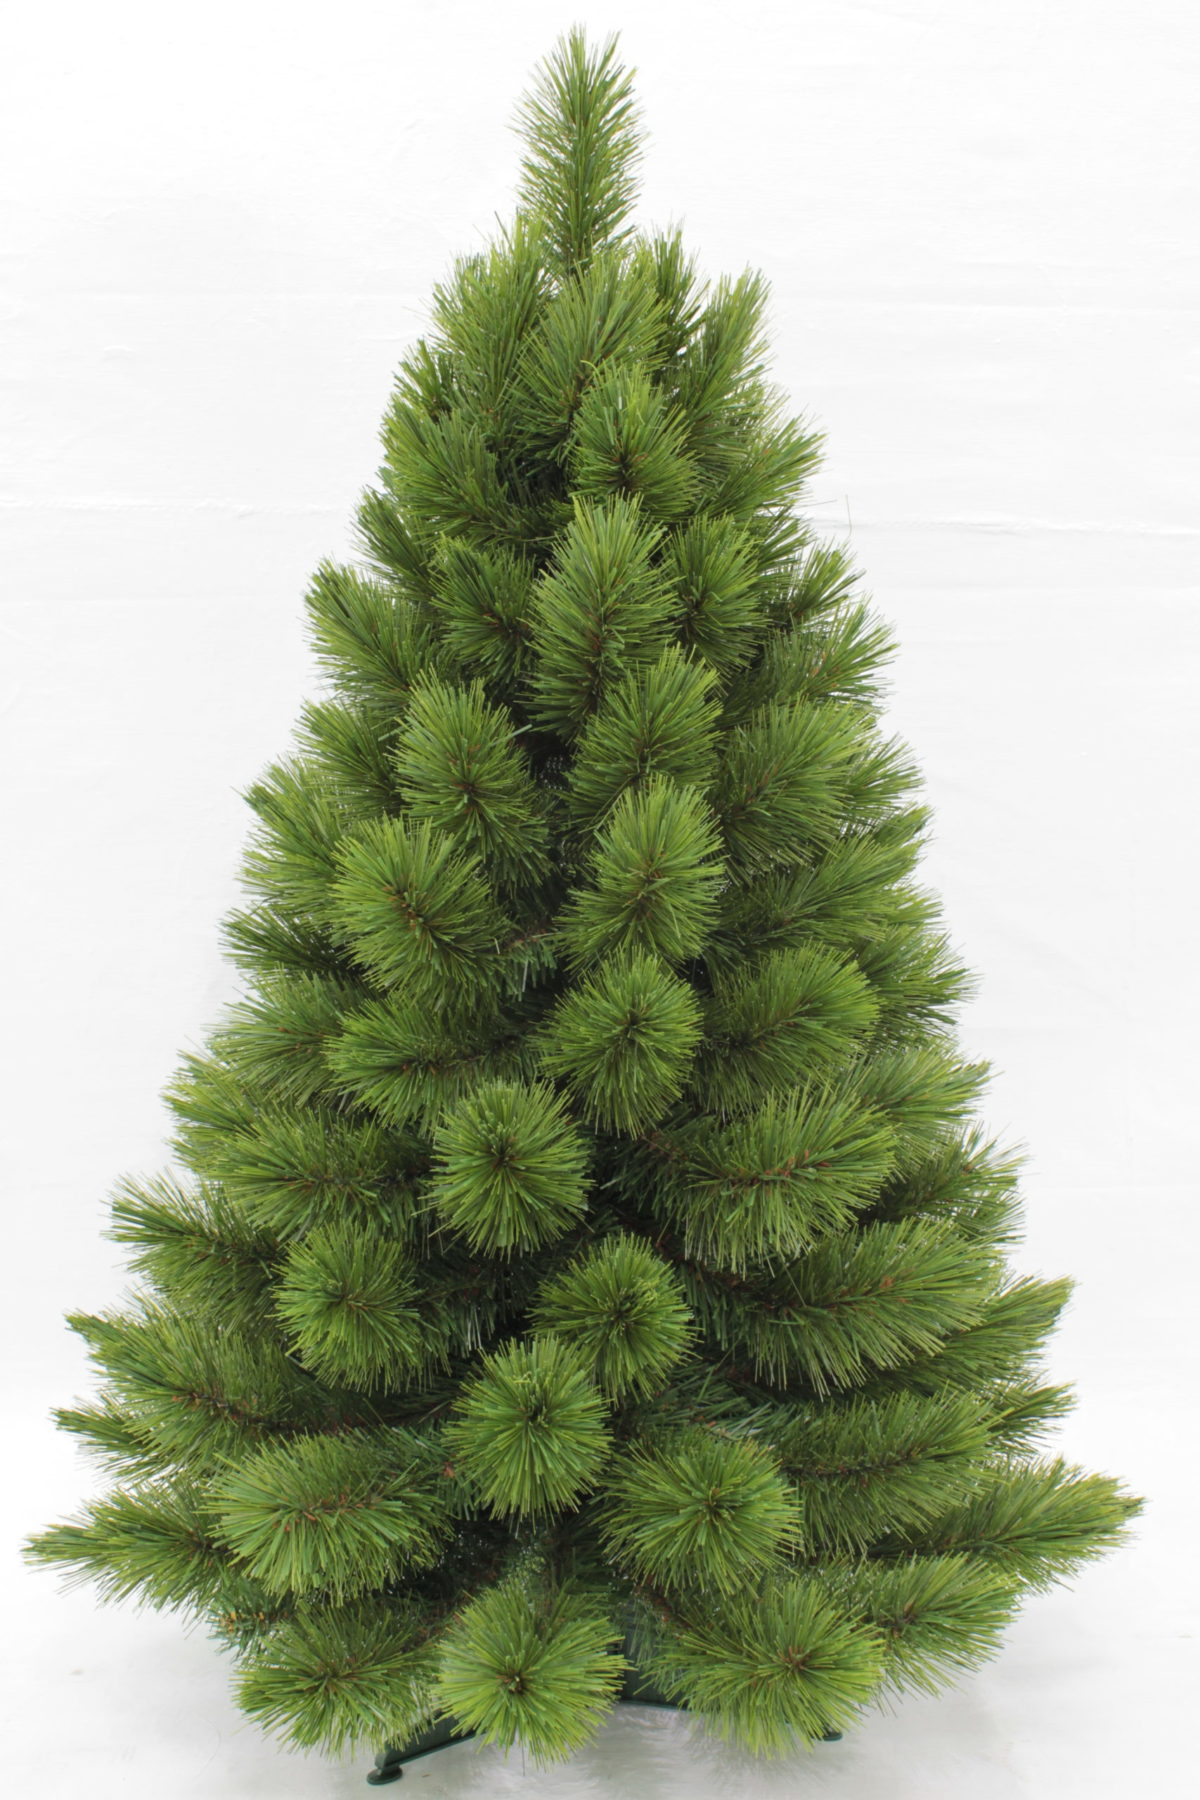 Small Christmas Tree Pitch Pine 90cm 3 Foot Purely Christmas